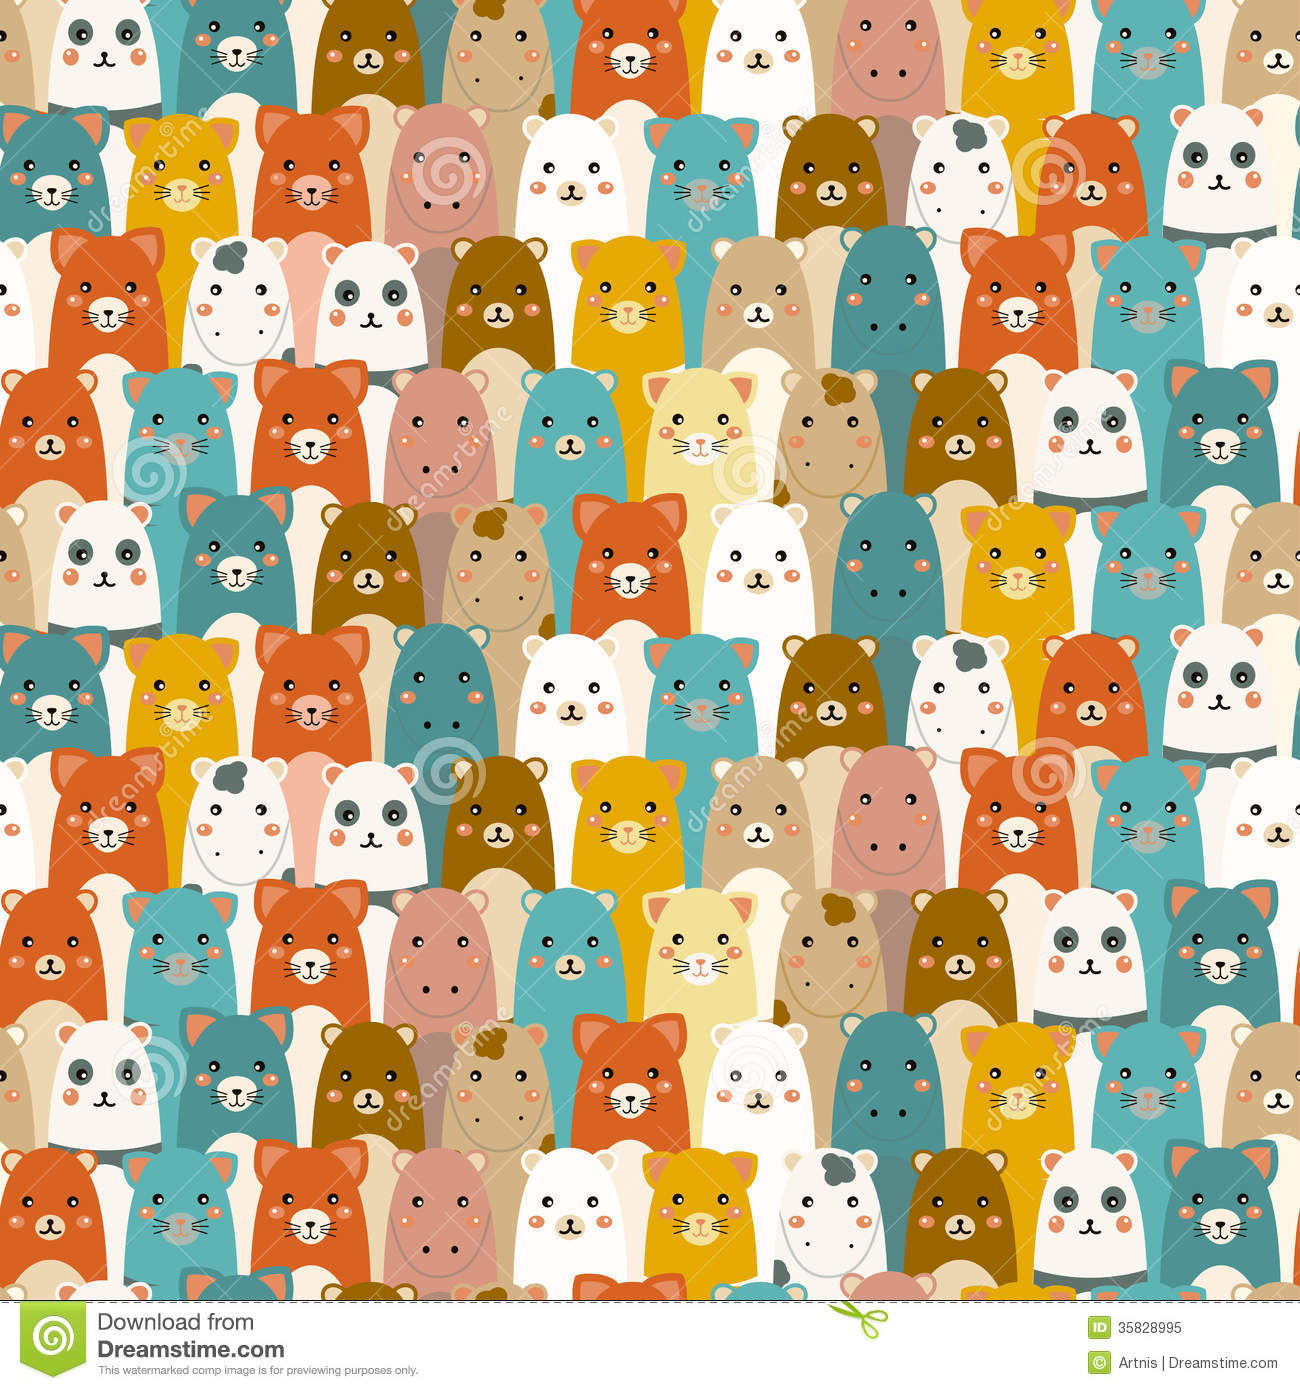 Cute Panda Wallpaper Download Seamless Pattern With Cartoon Animals Royalty Free Stock